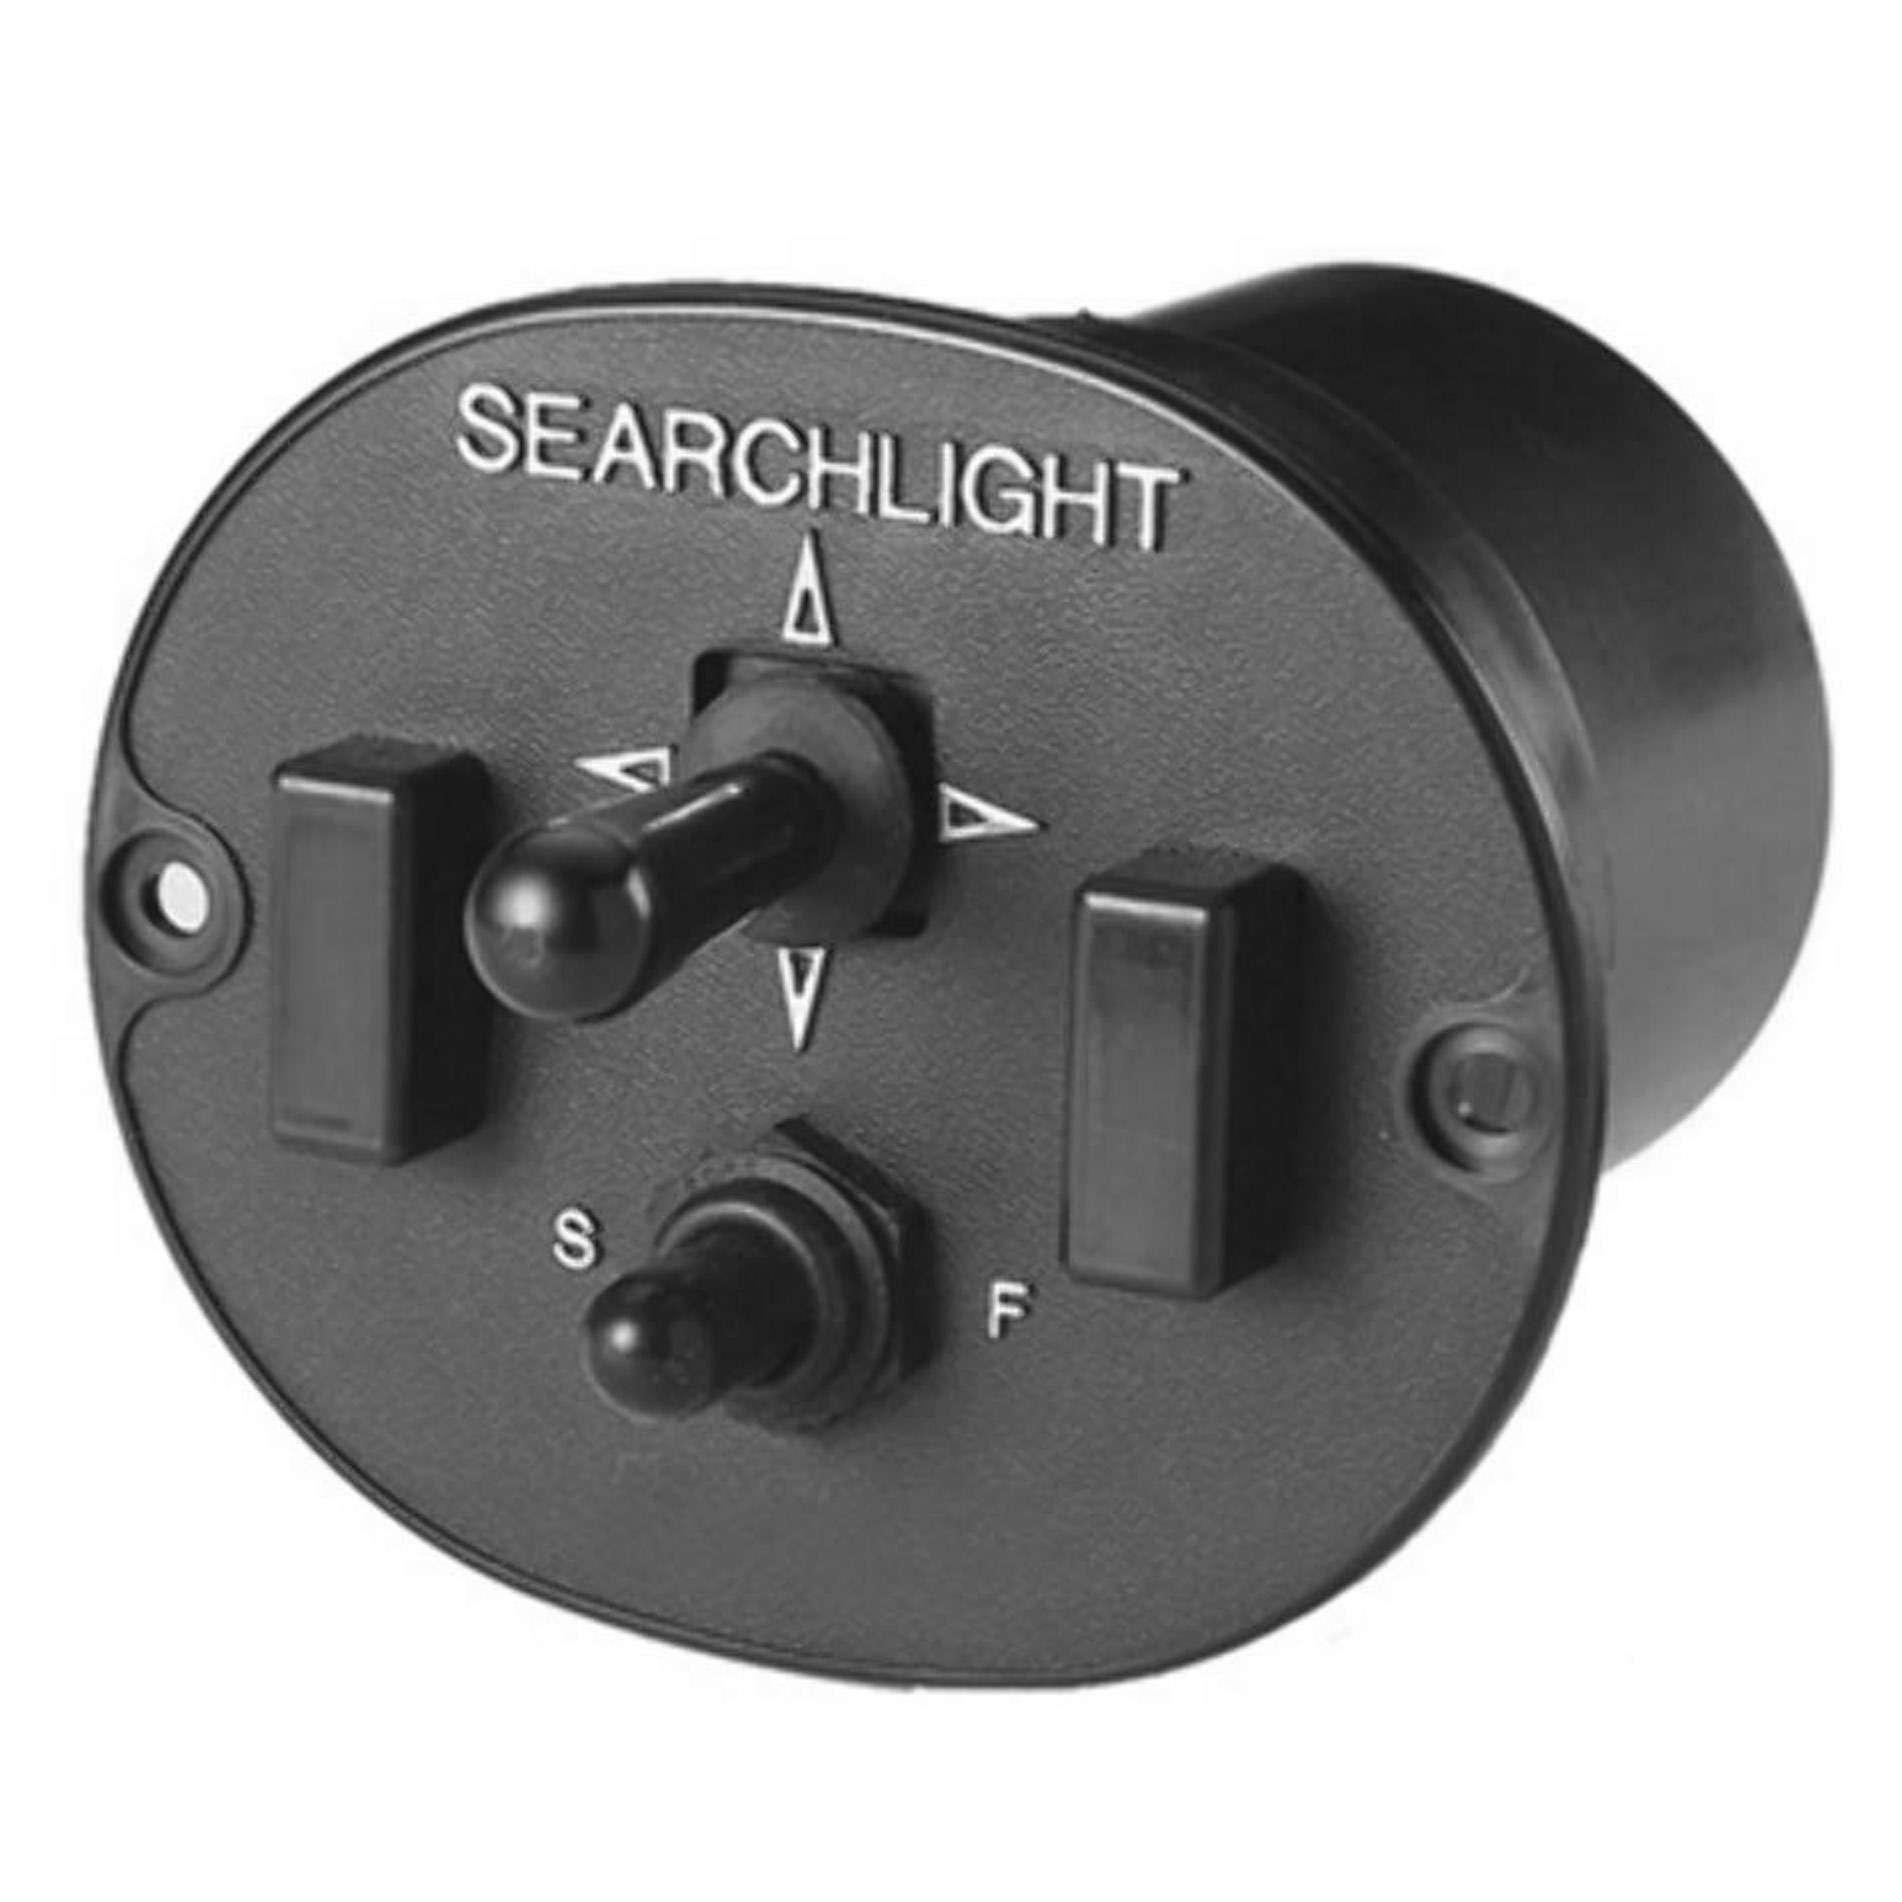 Jabsco 43670-0003 Control for Marine Searchlight 12V DC Search Light